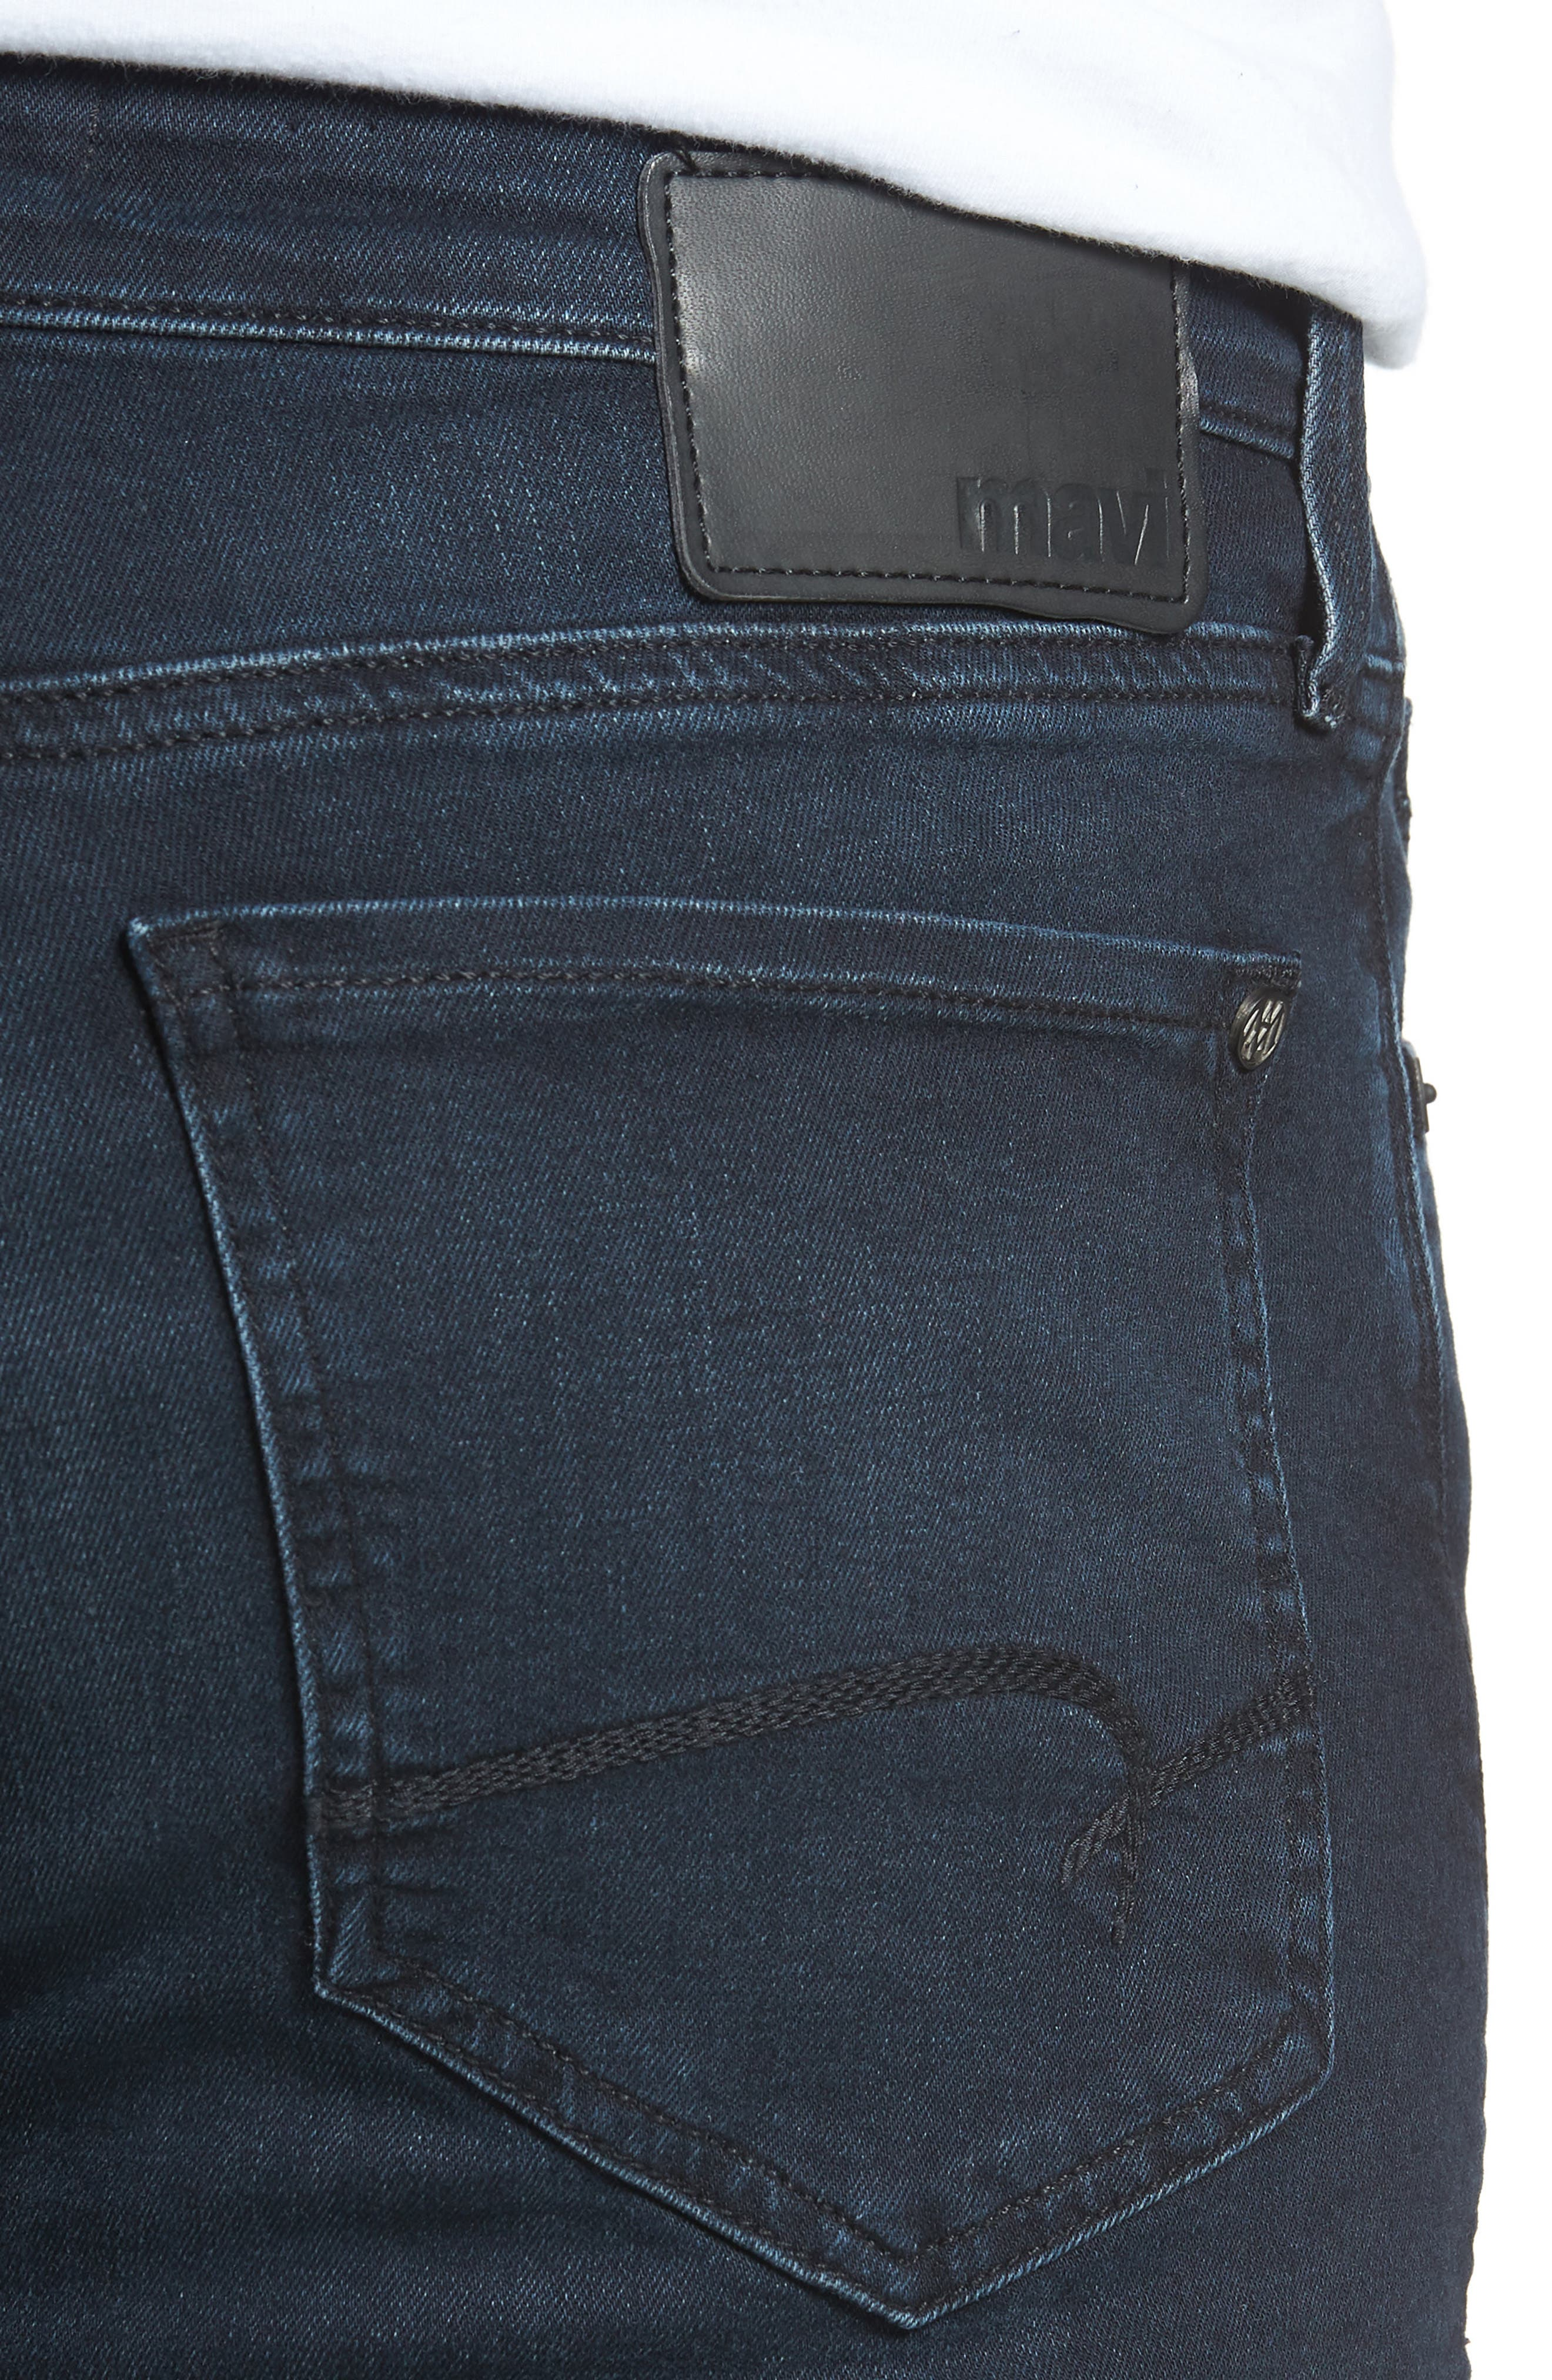 Matt Relaxed Fit Jeans,                             Alternate thumbnail 4, color,                             INK BRUSHED WILLIAMSBURG